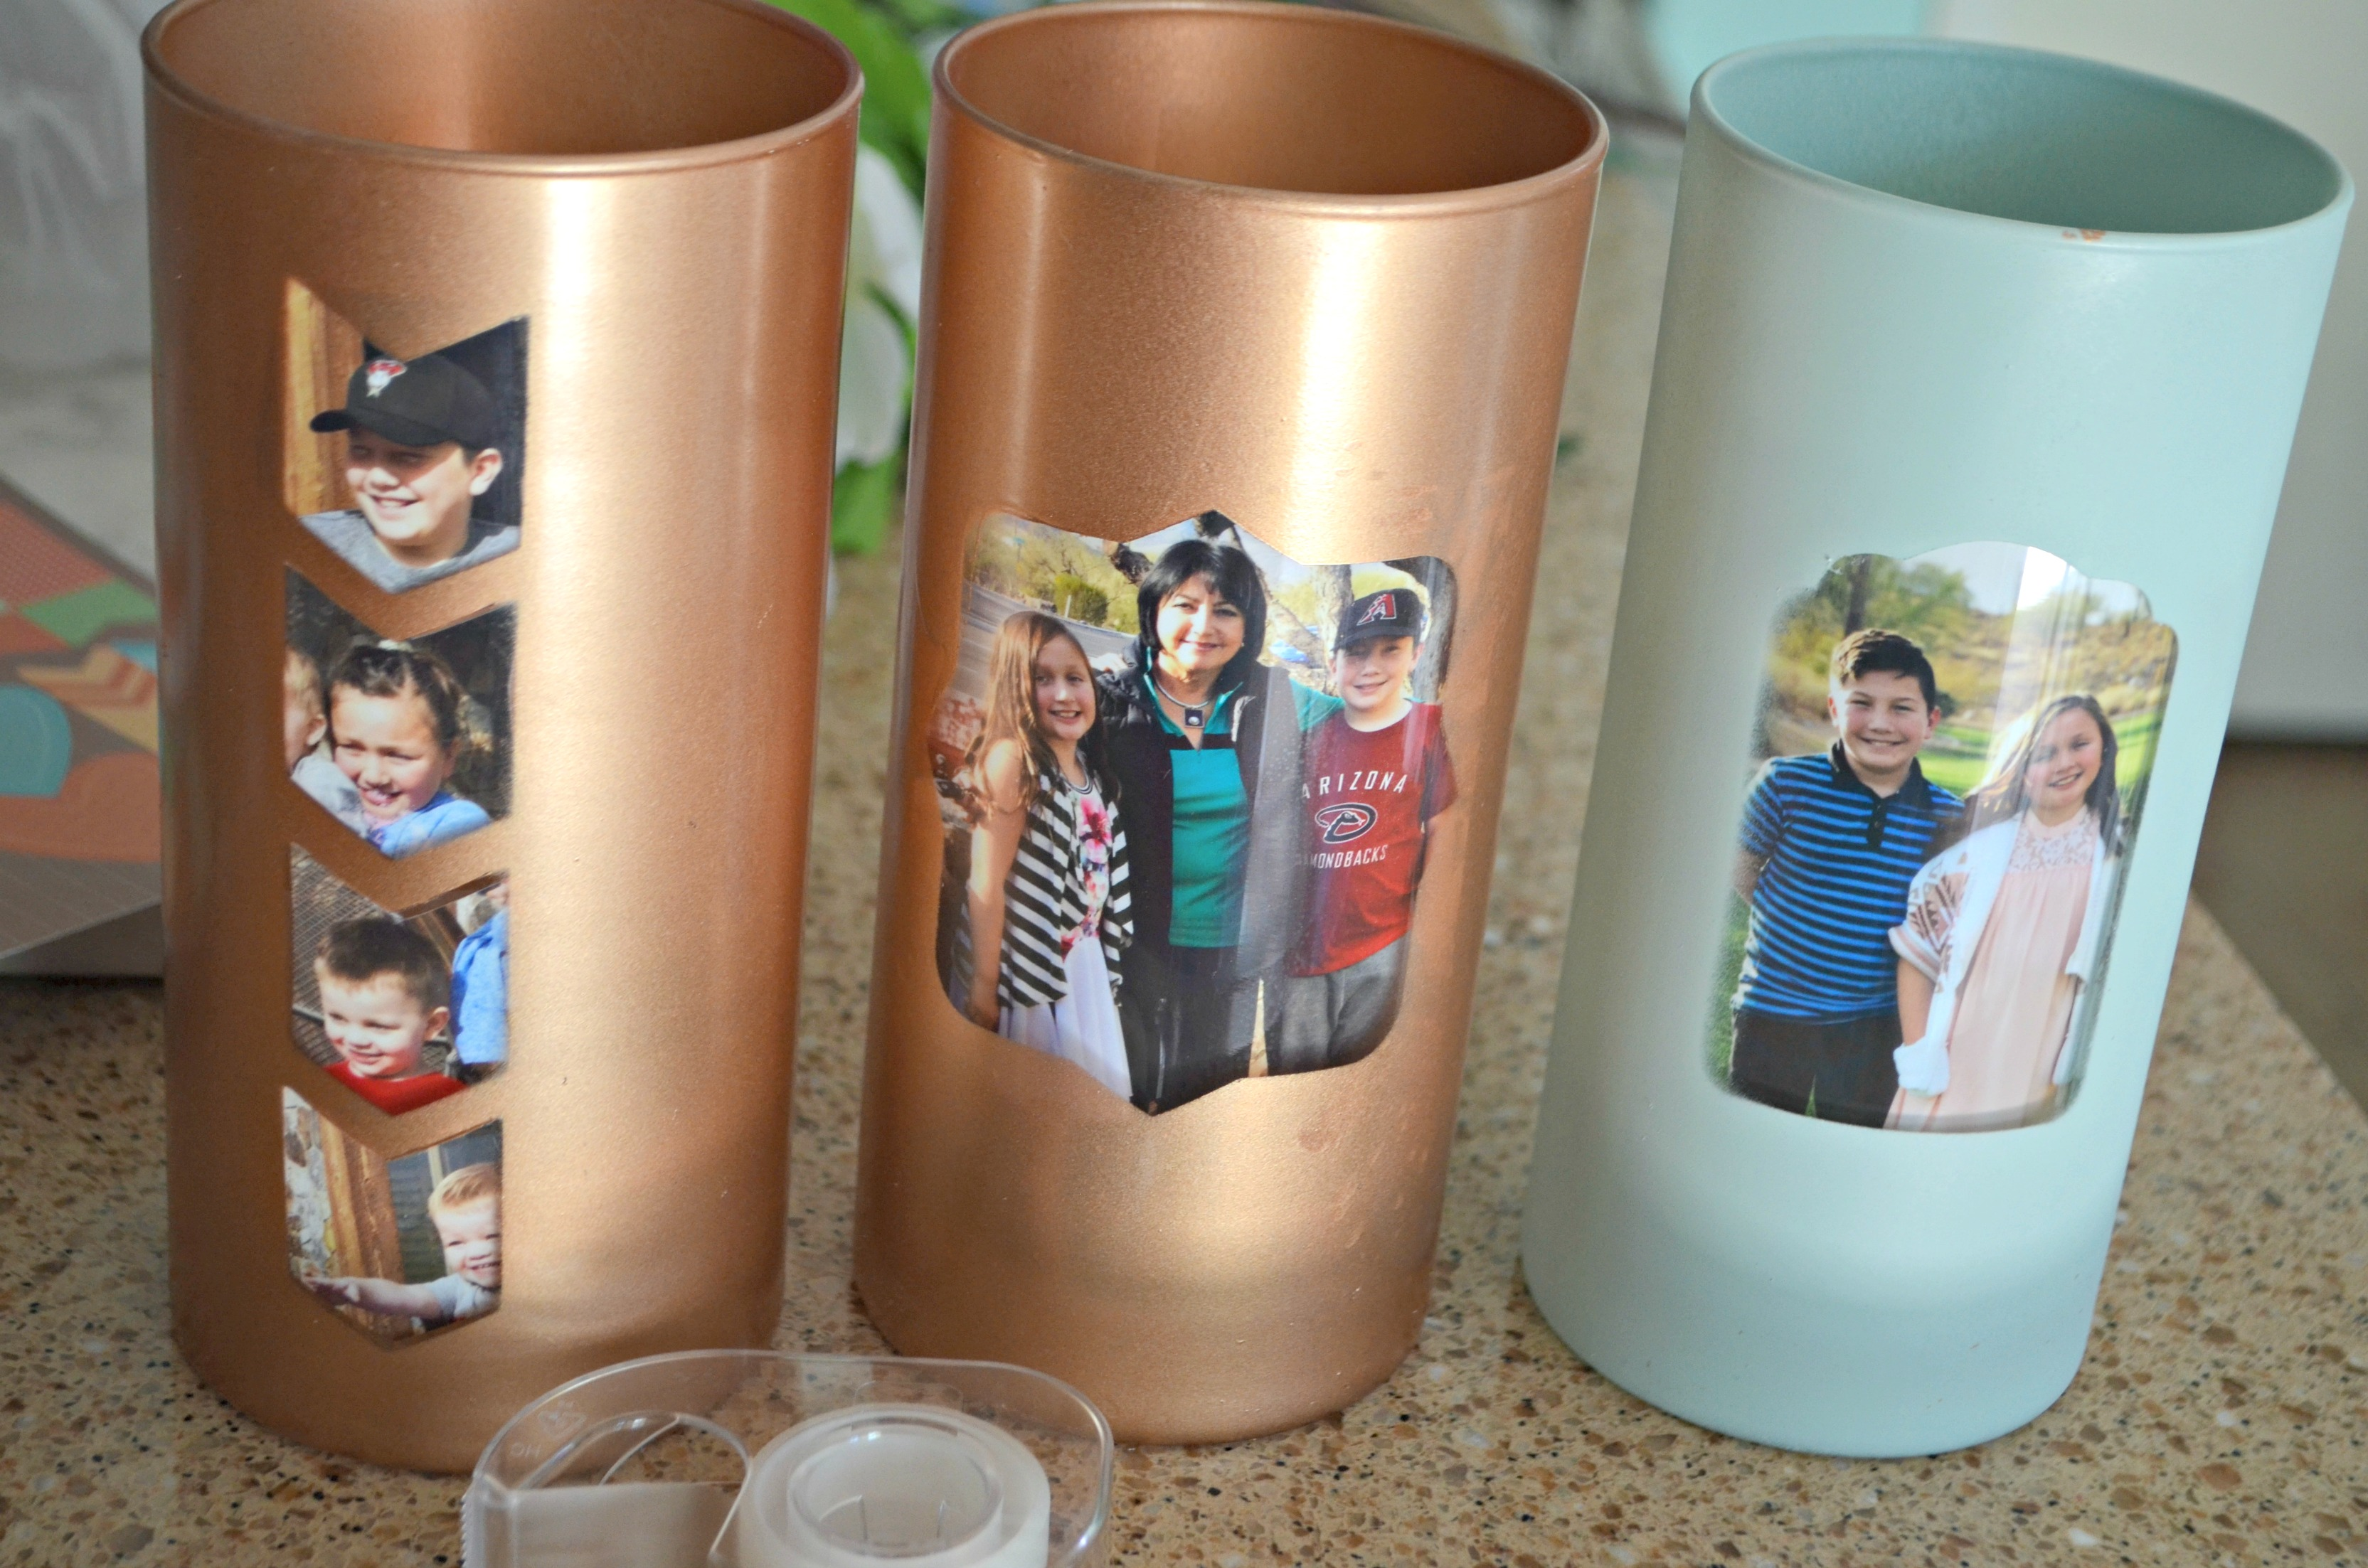 The photographs are the added touch for mom!